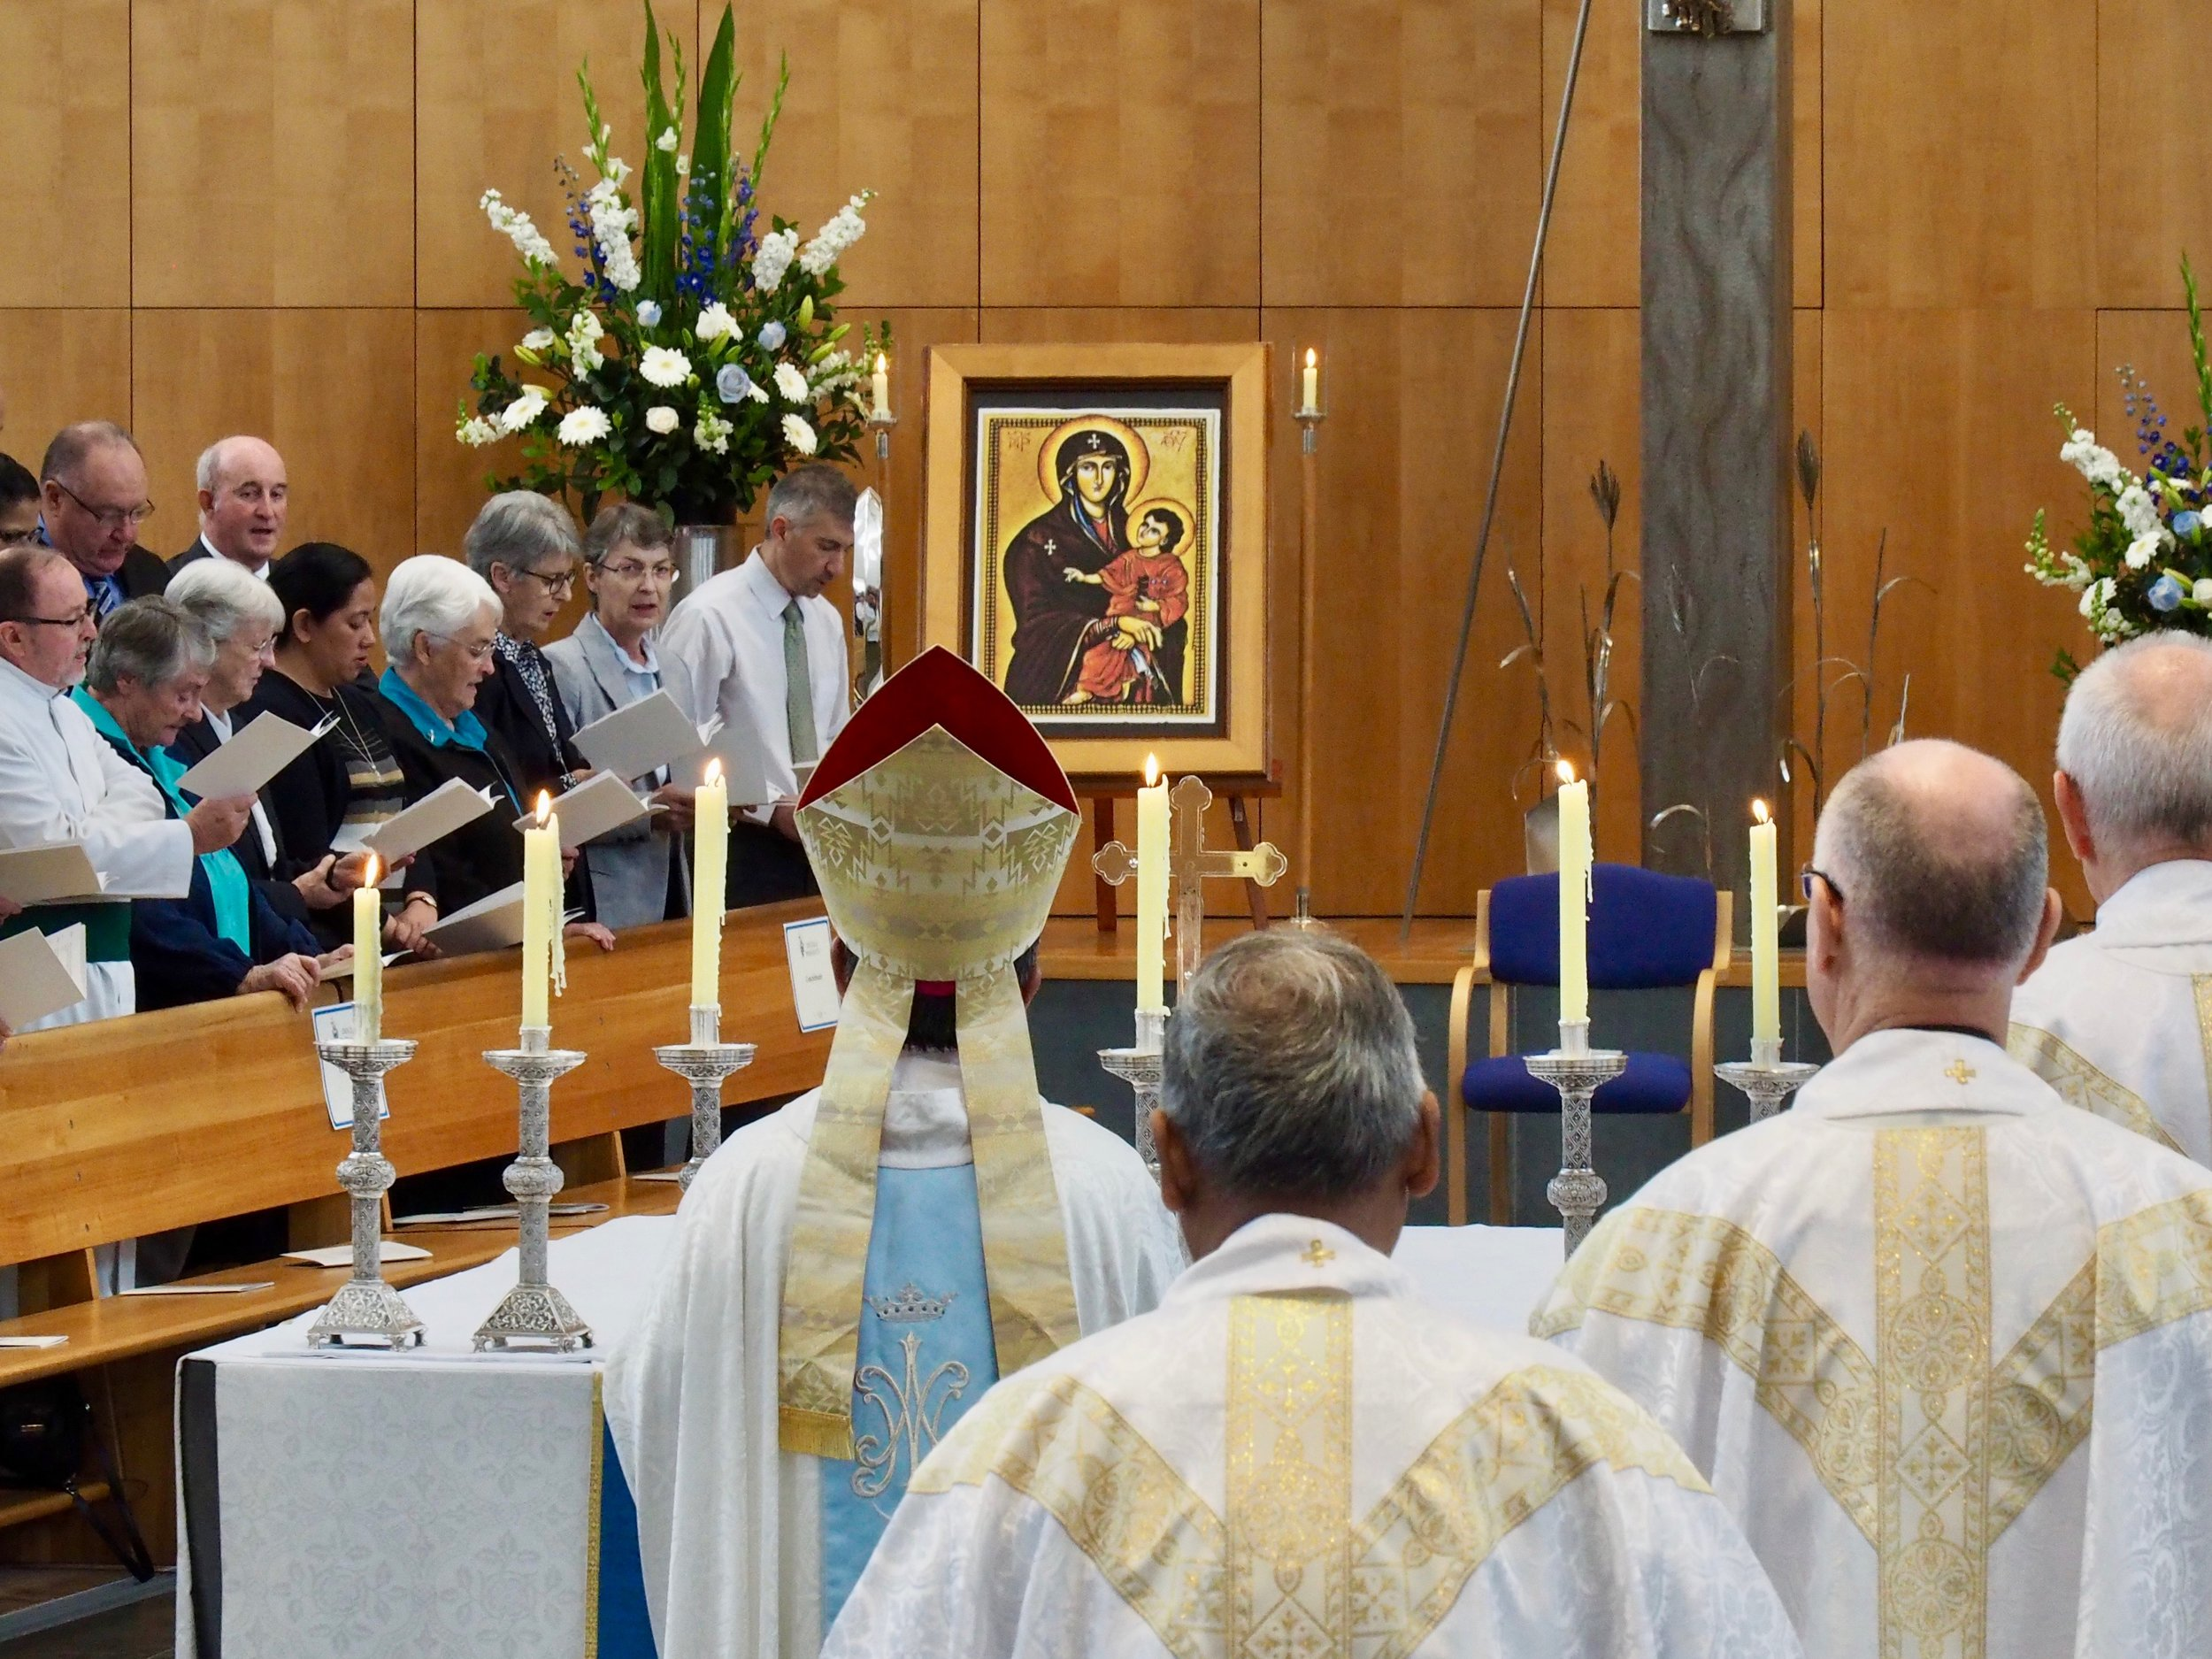 Bicentenary Mass Sydney 12 Aug 2017 Photos by Paul Harris 00106.jpg